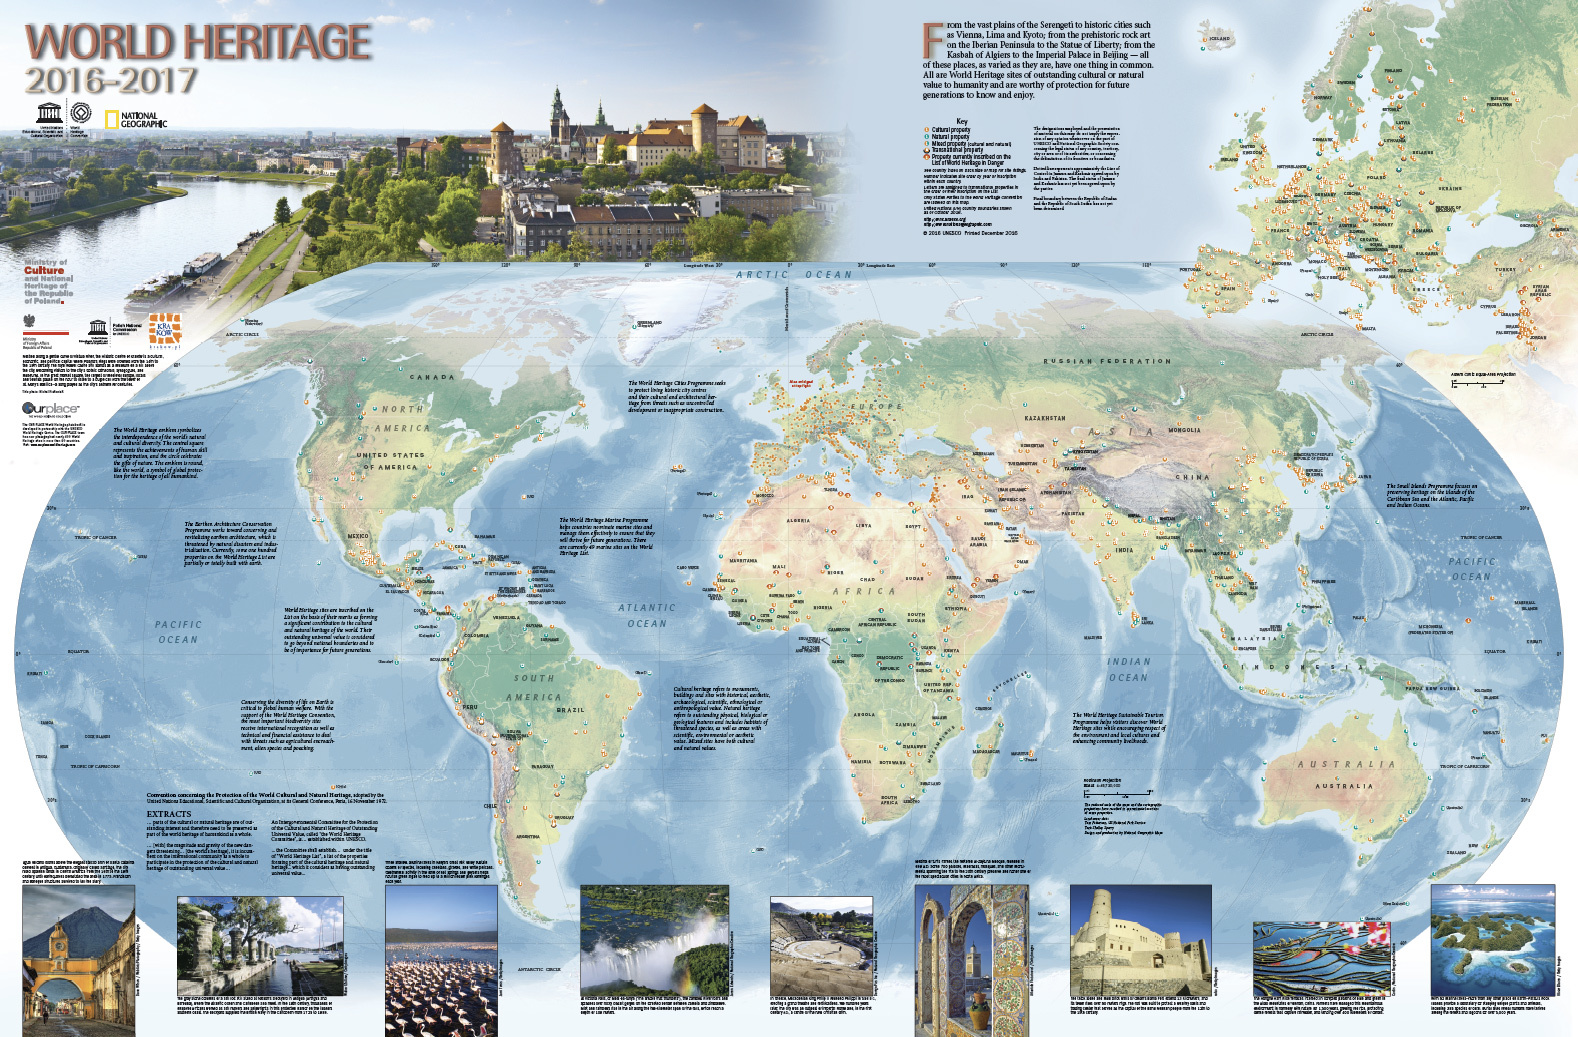 Unesco world heritage centre 2016 2017 world heritage map published the latest version of the world heritage map produced by the unesco world heritage centre and national geographic maps with the generous support of poland gumiabroncs Images